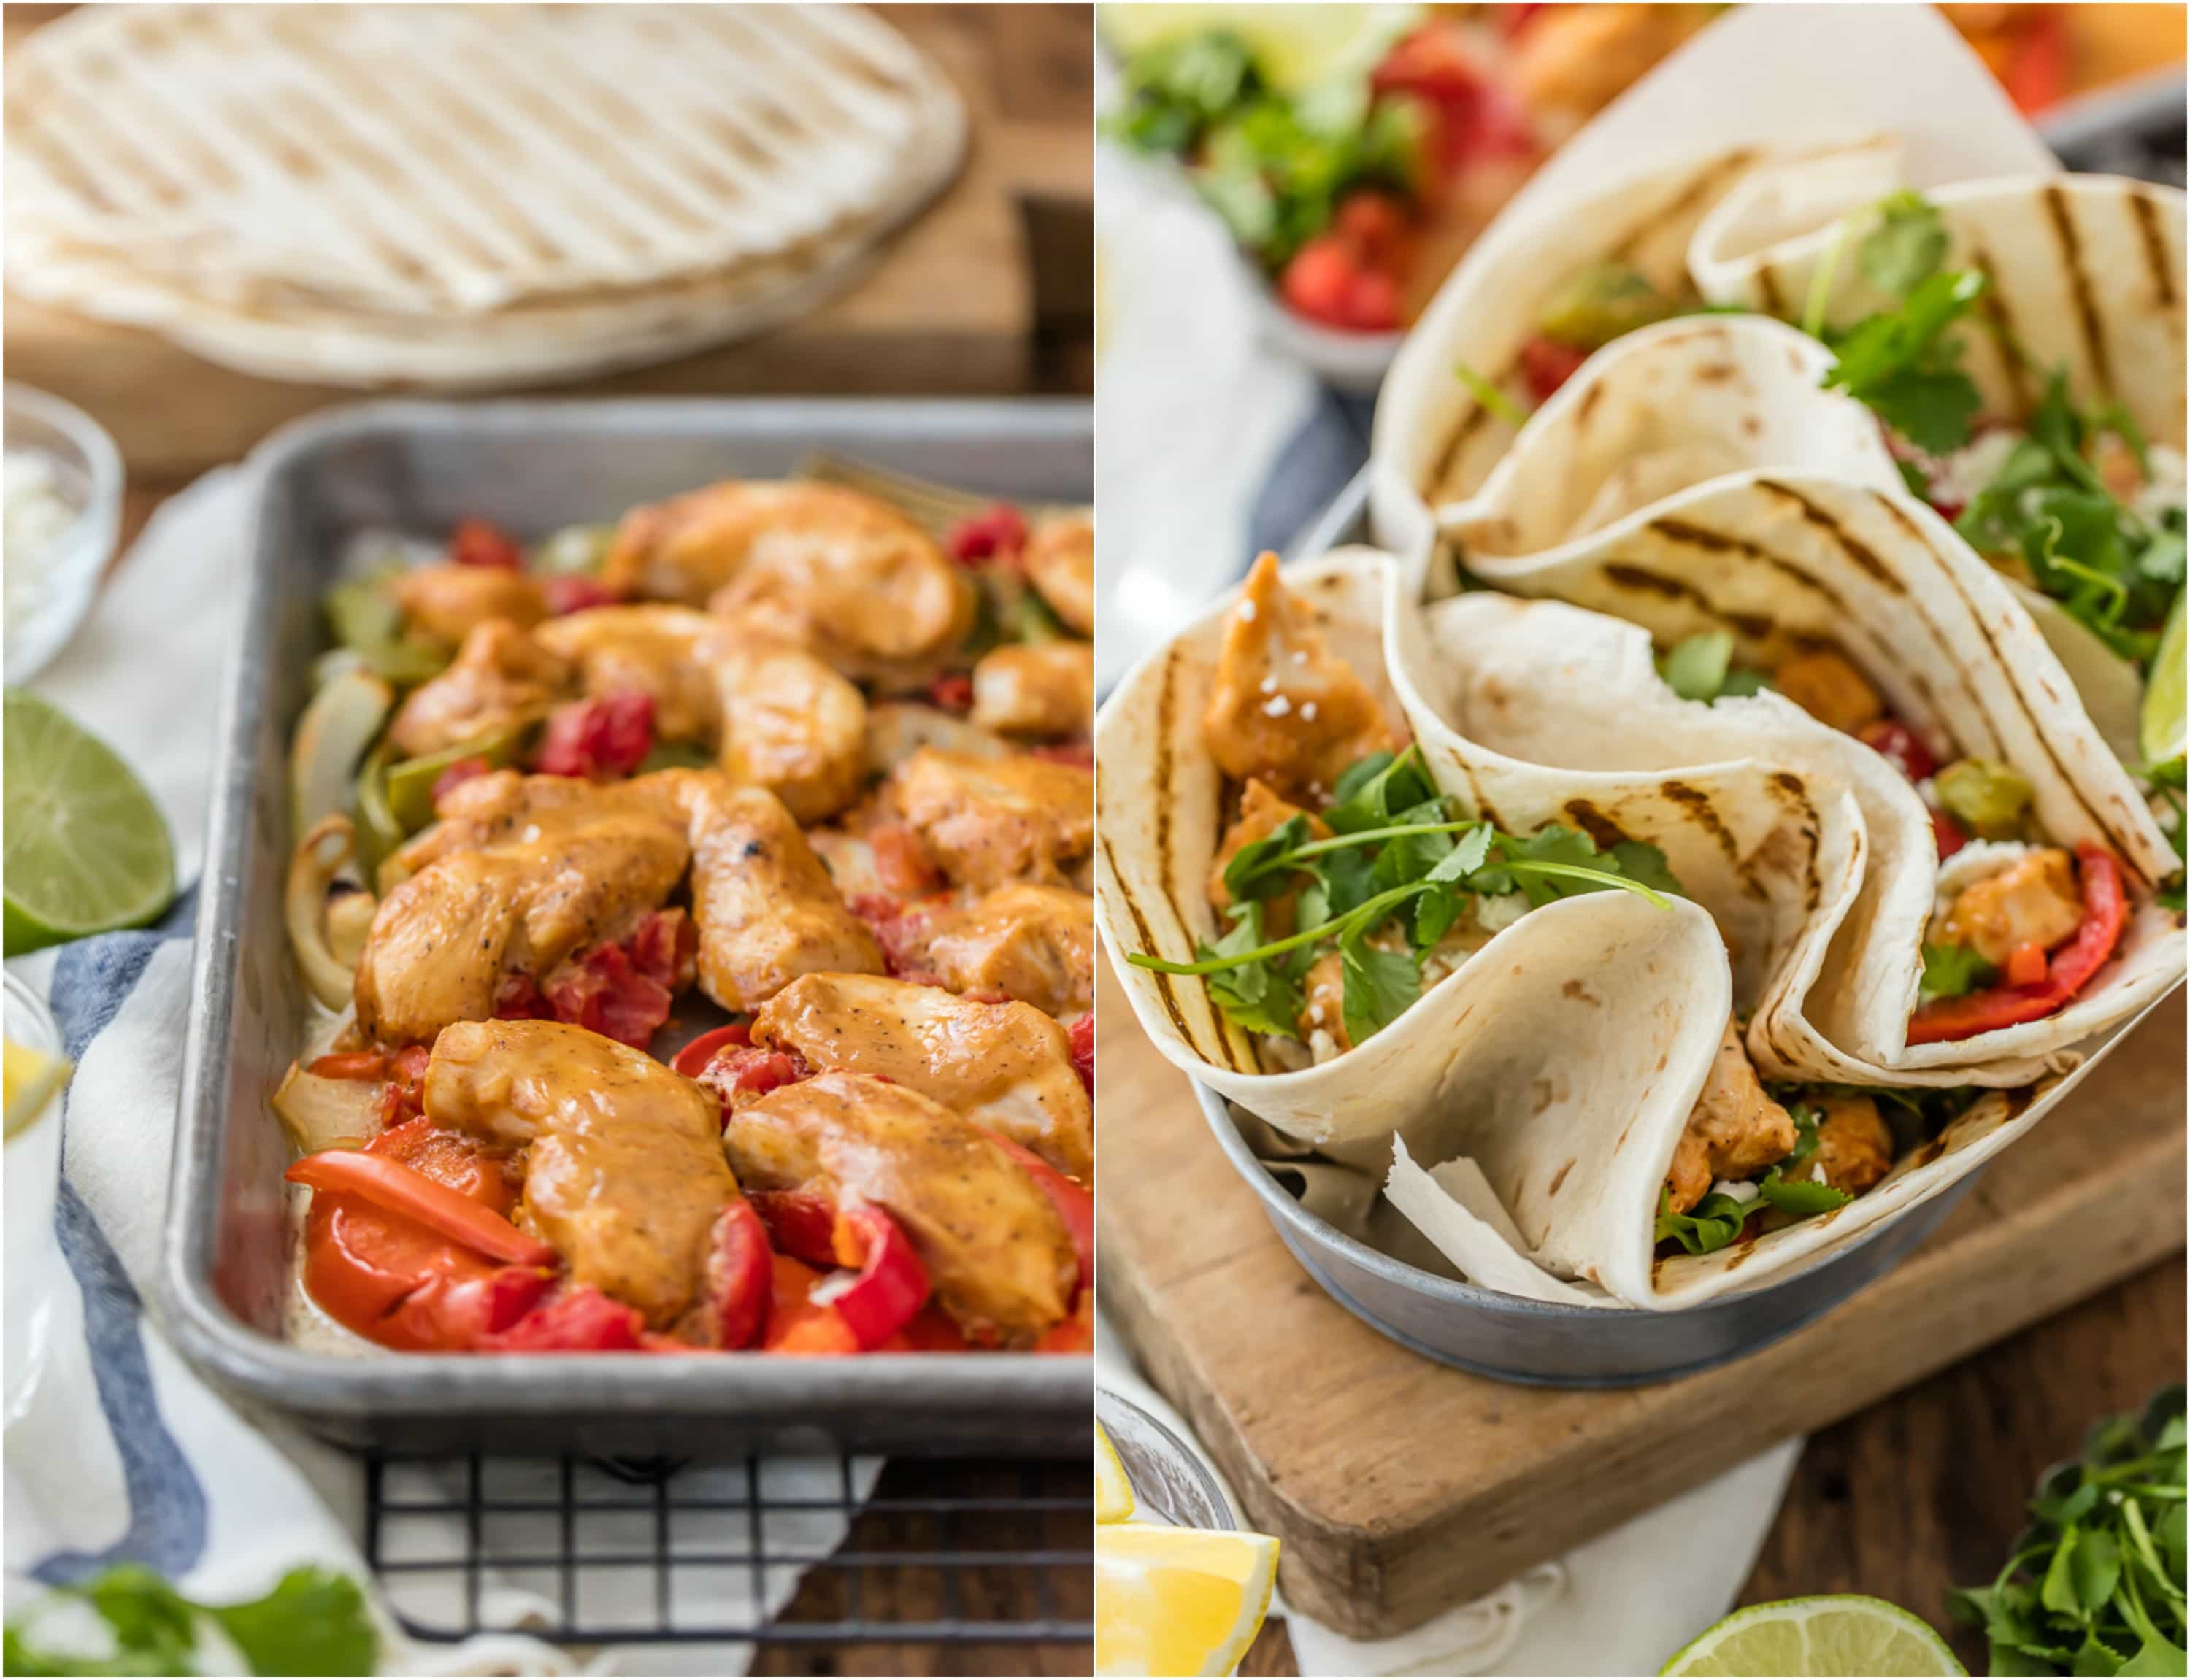 sheet pan fajitas, chicken fajitas in tortillas